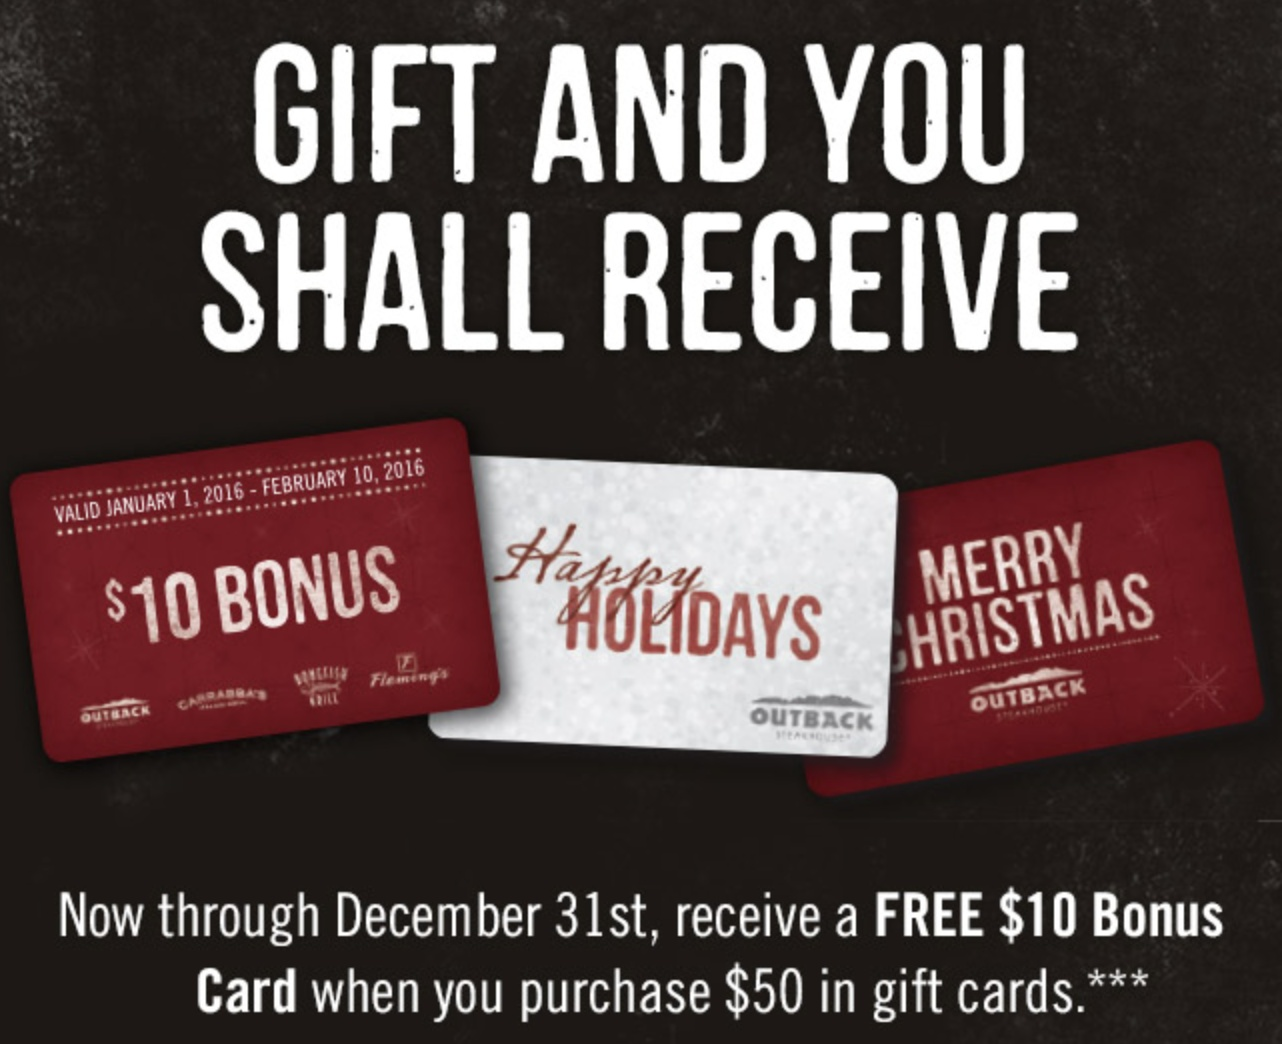 Not valid with any other discounts or offers including any Dine Rewards redemption. Not valid for Private Dining events. Not redeemable at Carrabba's franchise locations, Carrabba's Kirby and Carrabba's Woodway locations in Houston, TX, Carrabba's and Outback airport locations.